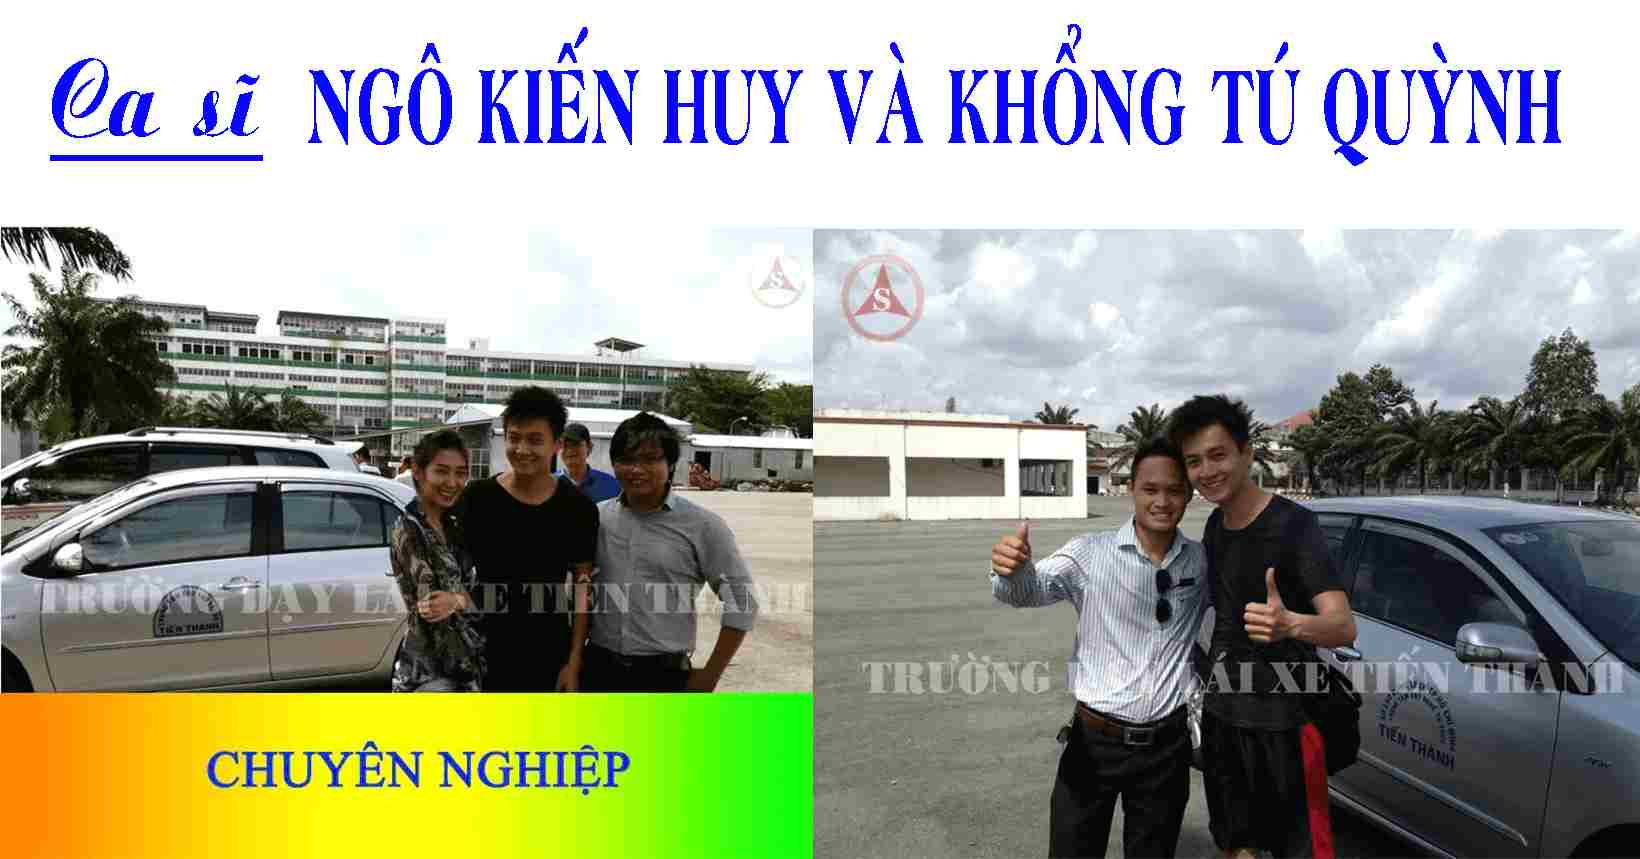 truong day lai xe Tien Thanh